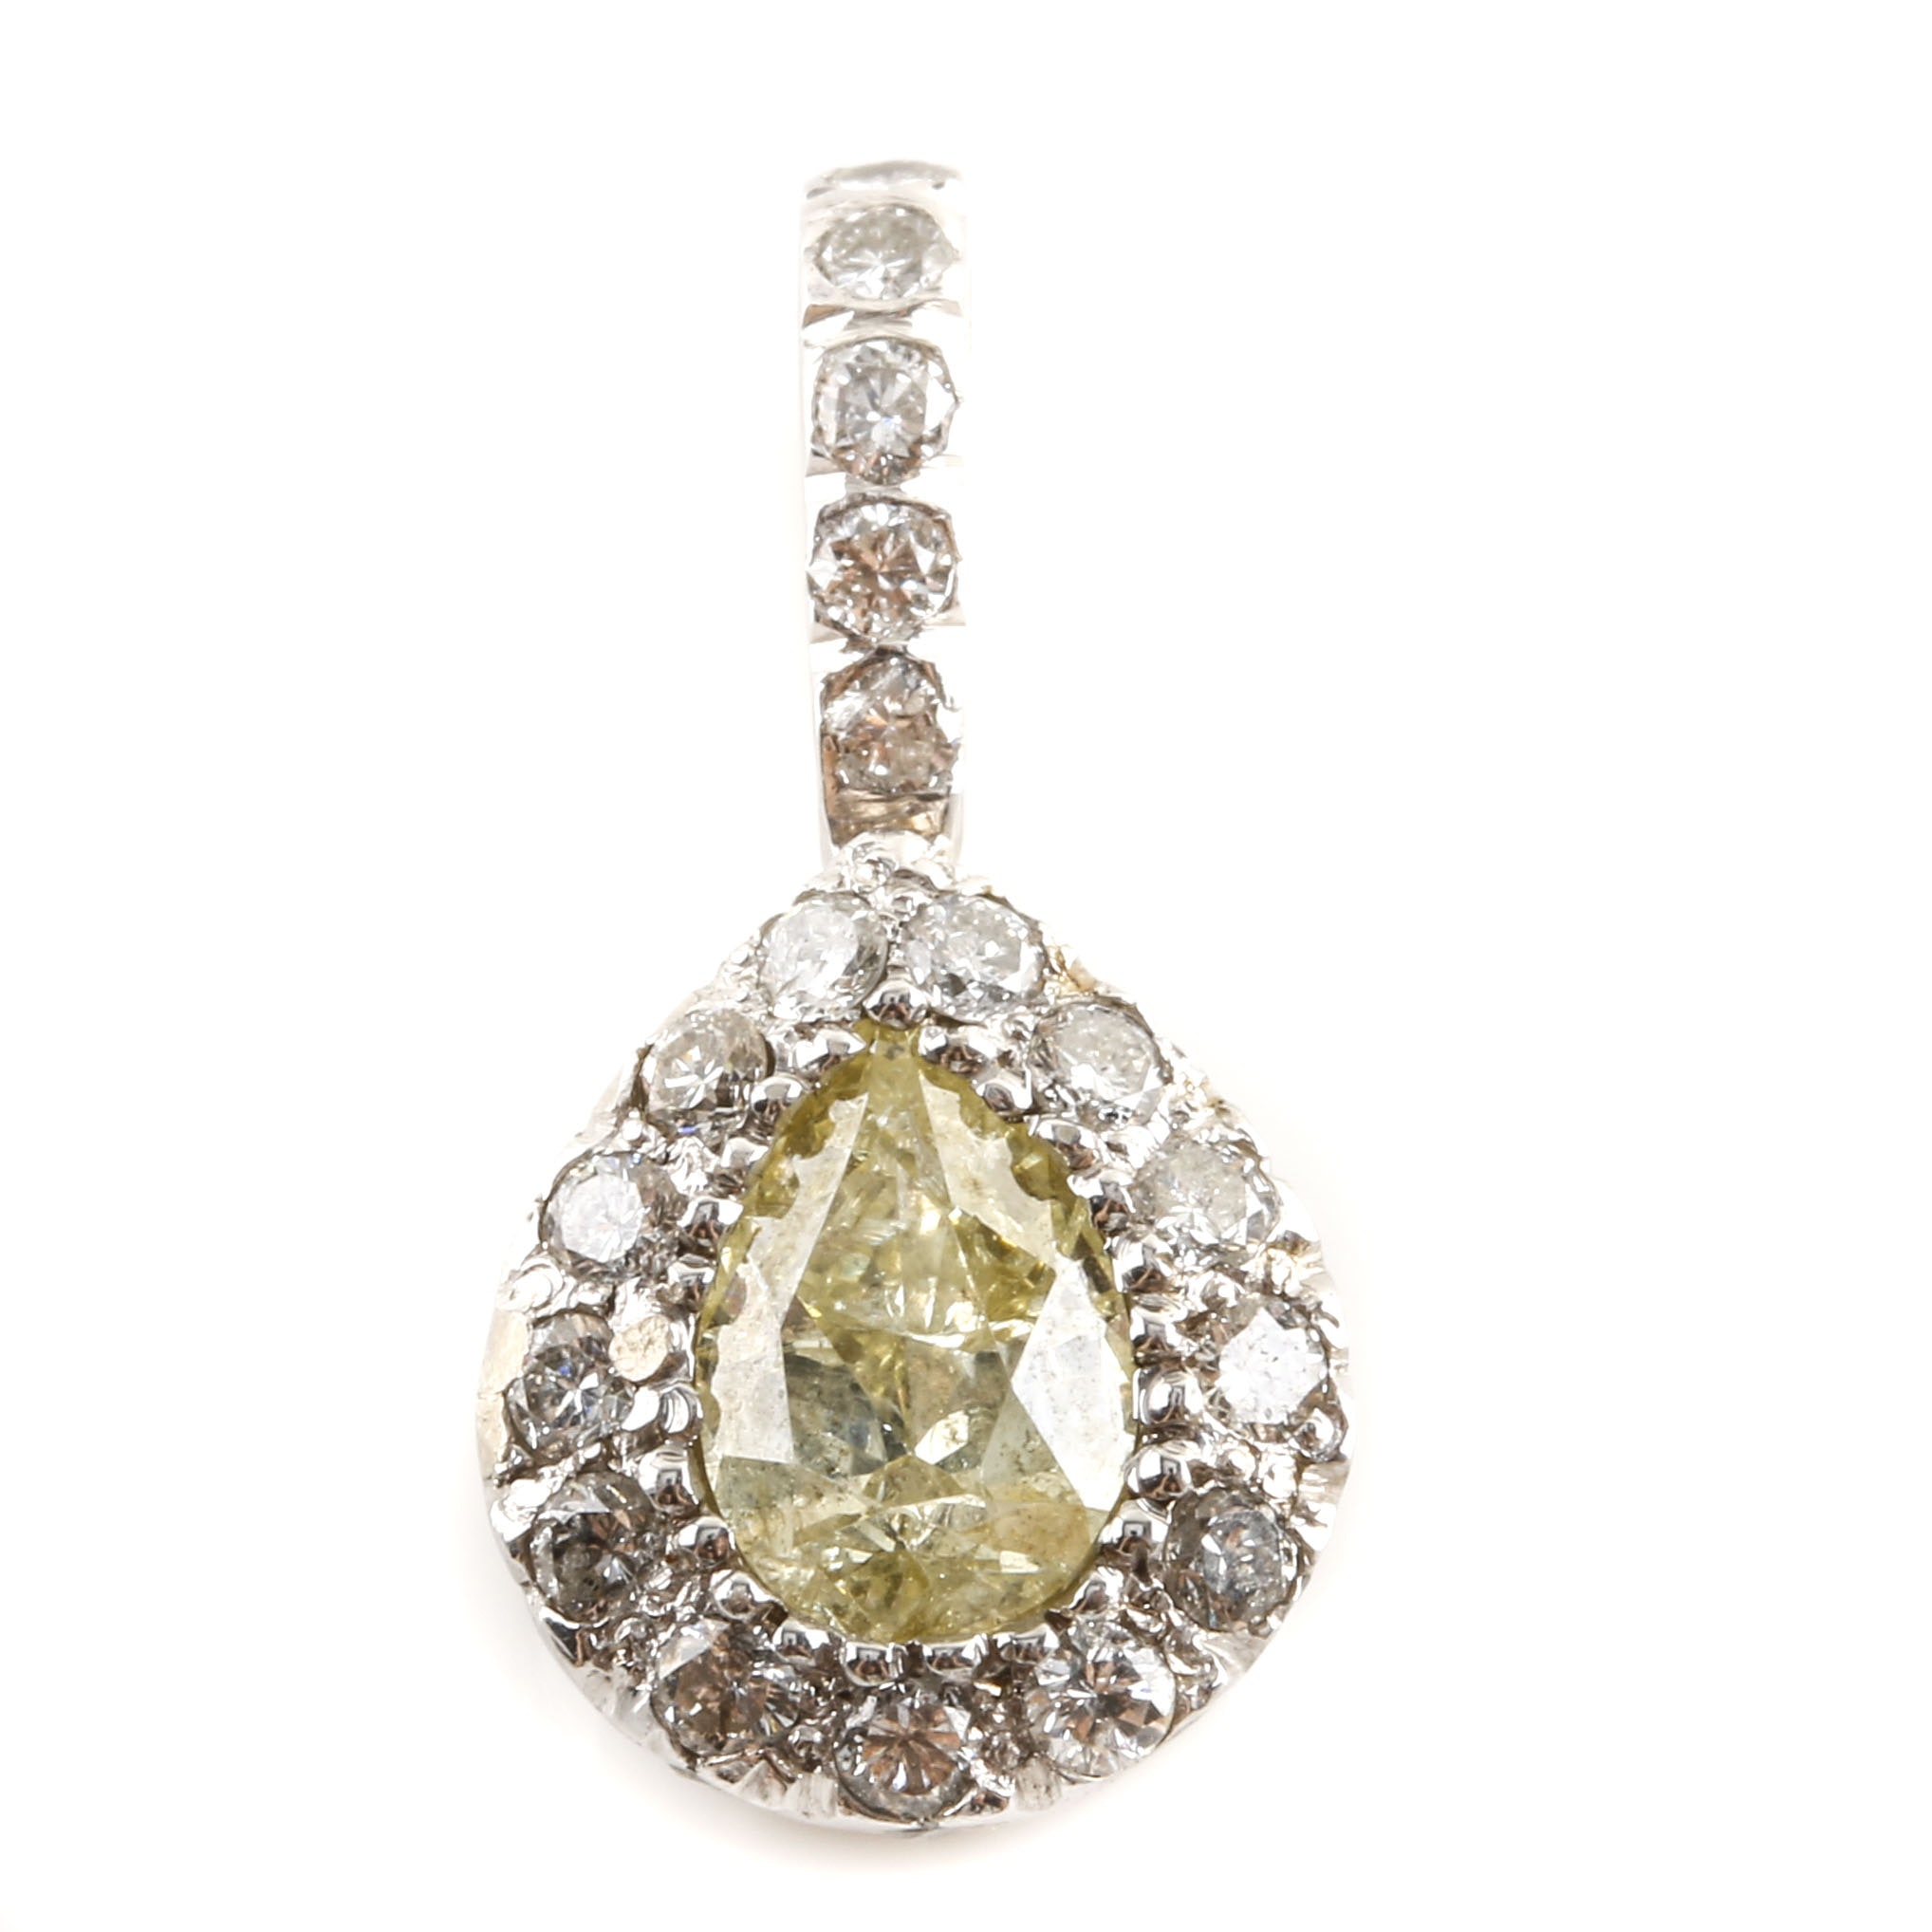 14K White Gold Diamond Pendant with Light Yellow Diamond